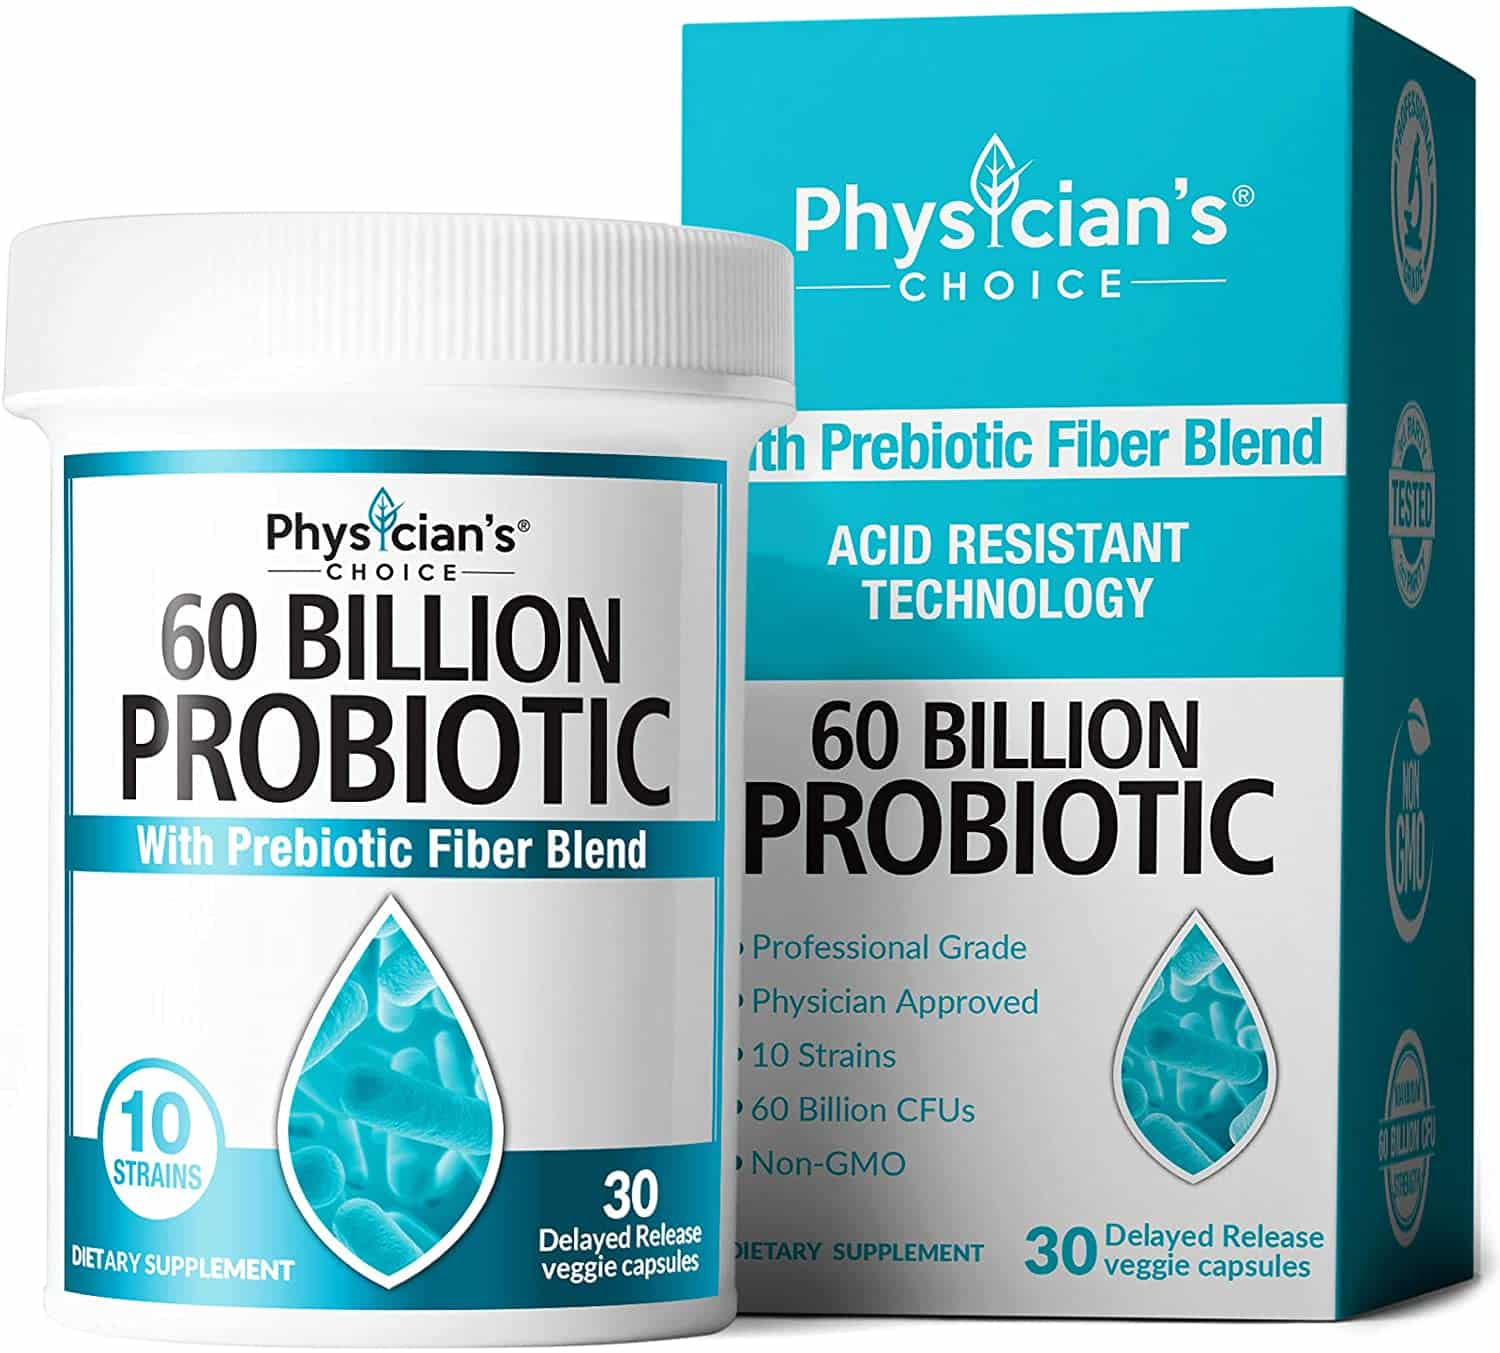 Physician's CHOICE Probiotics Supplements